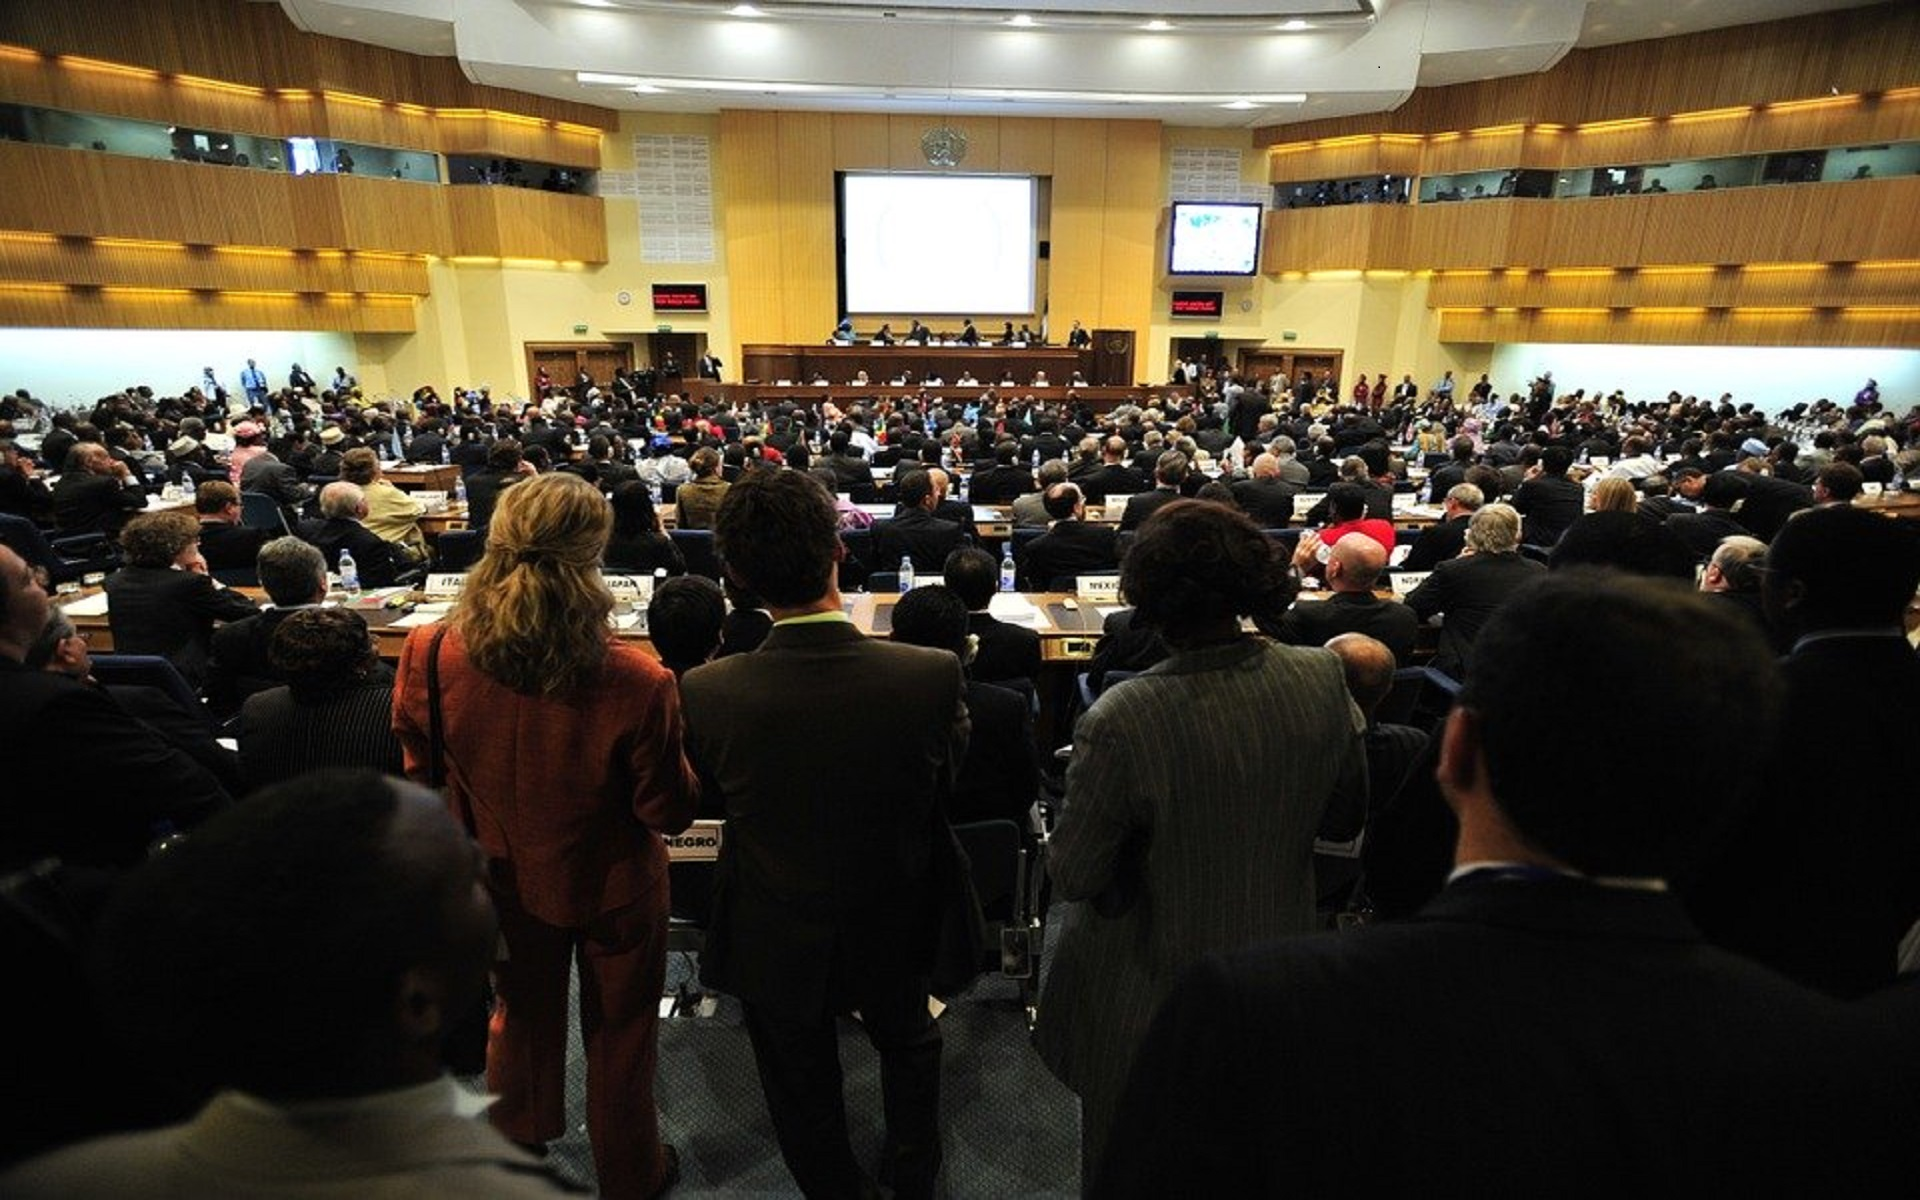 The benefits of attending live conferences